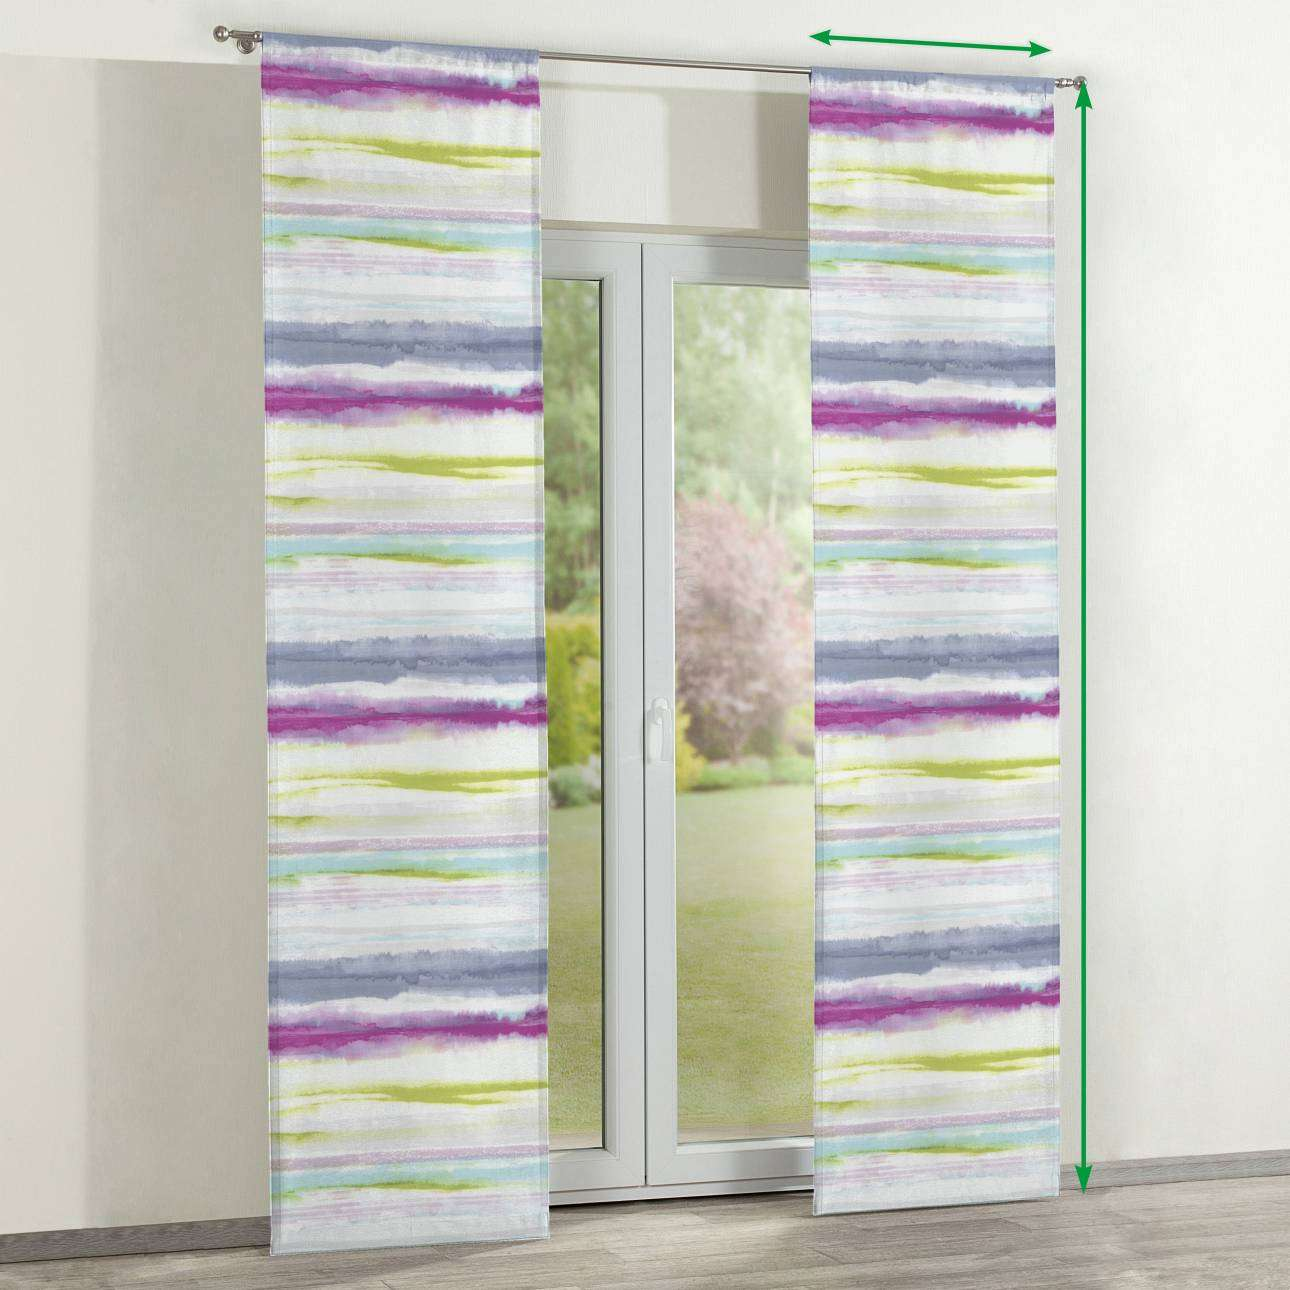 Slot panel curtains – Set of 2 in collection Aquarelle, fabric: 140-69